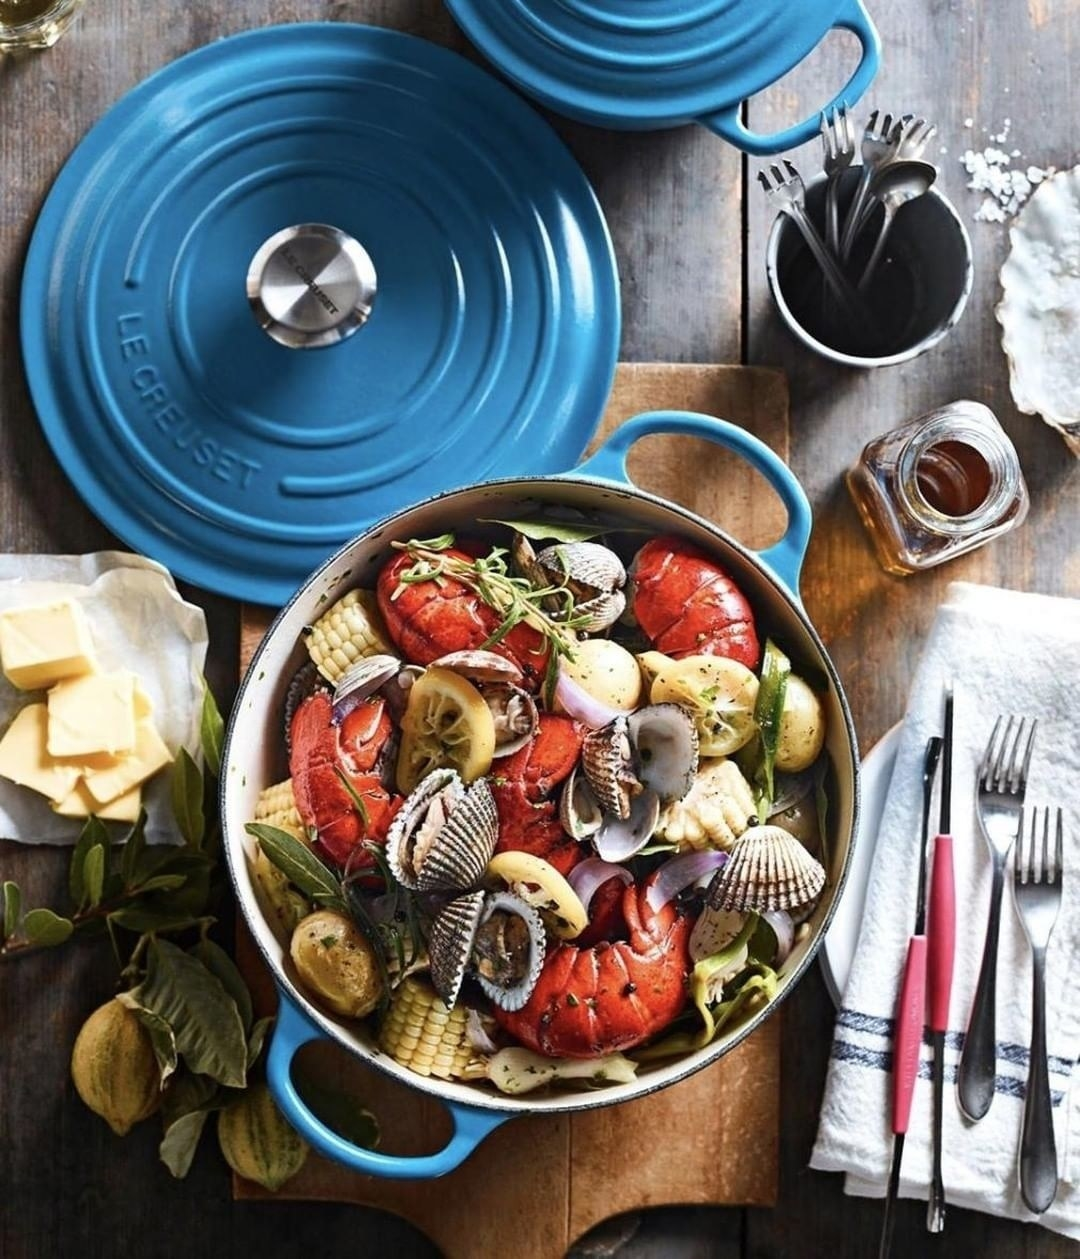 The dutch oven cooking seafood